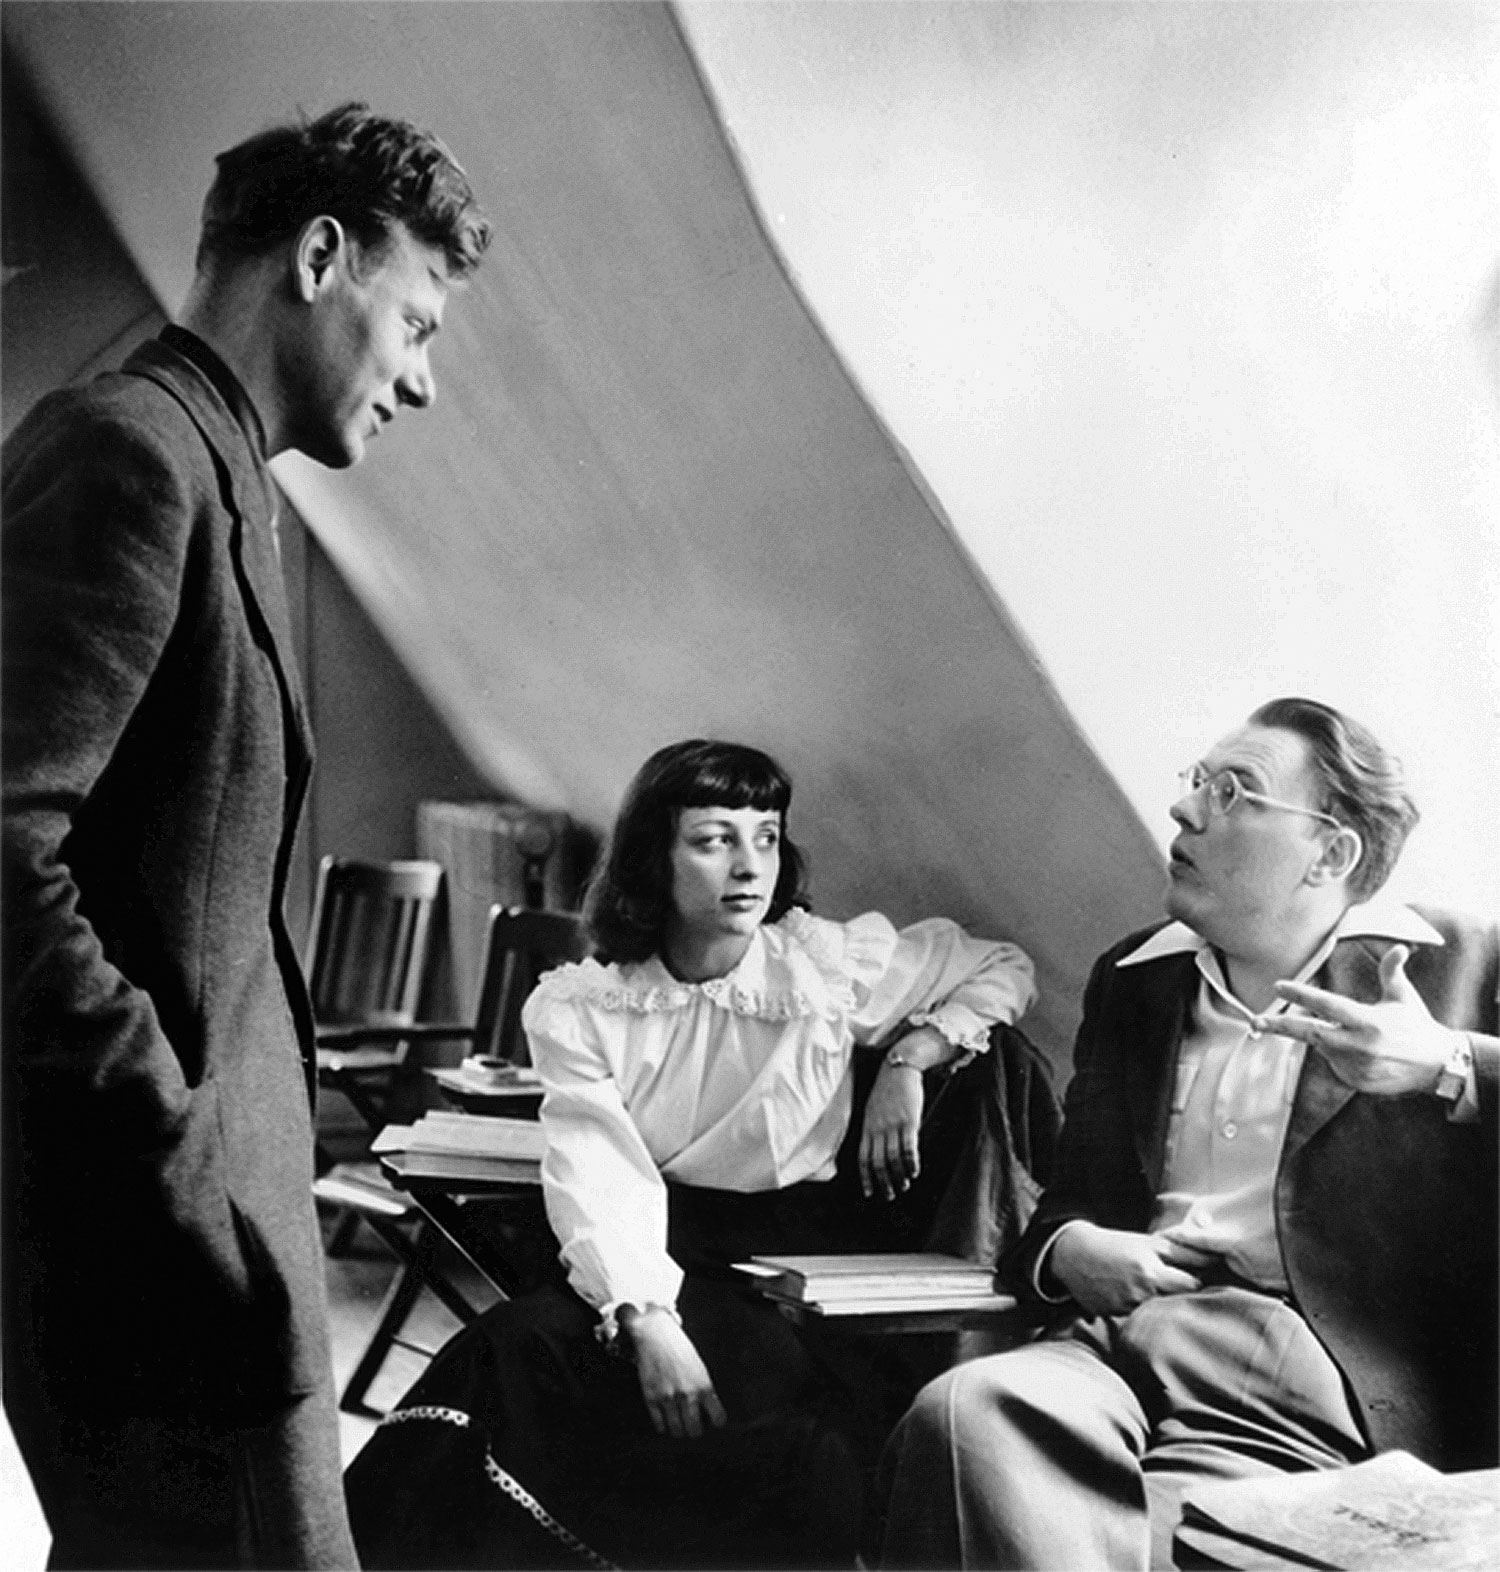 Paul-de-Man-left-Renée-Weiss-and-Ted-Weiss-1949-at-Bard-College